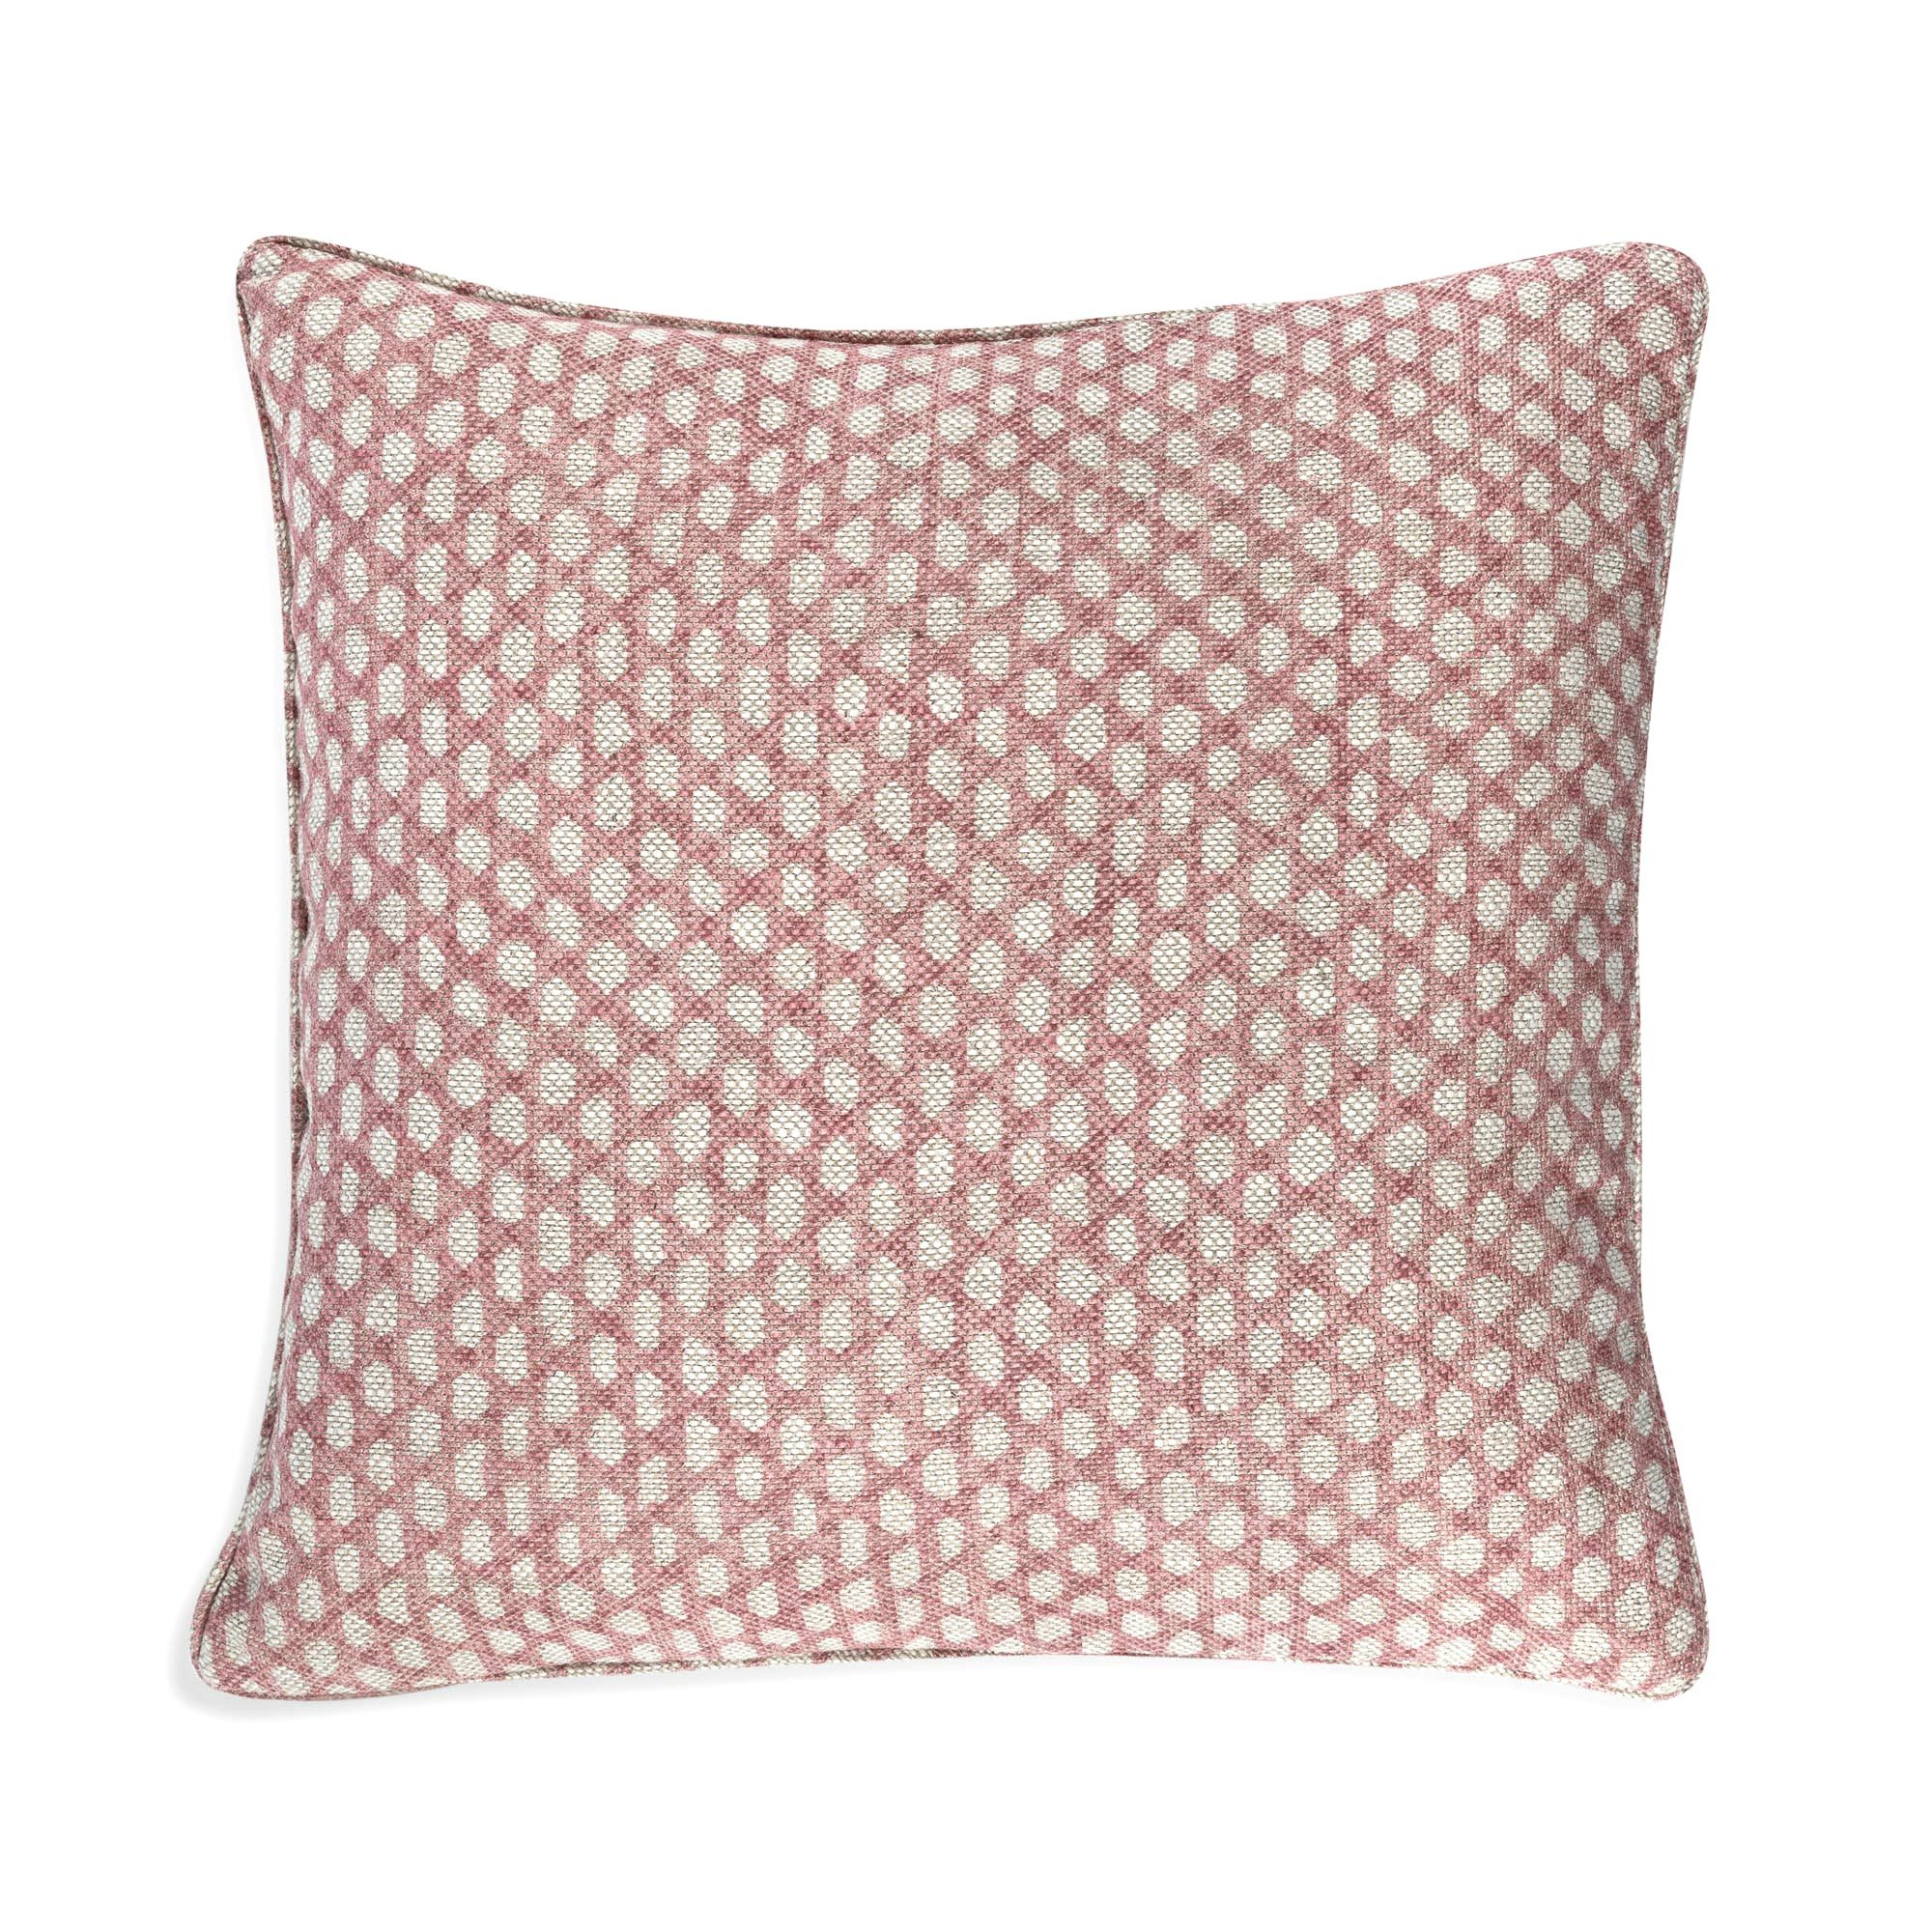 Small Square Cushion in Pink Wicker